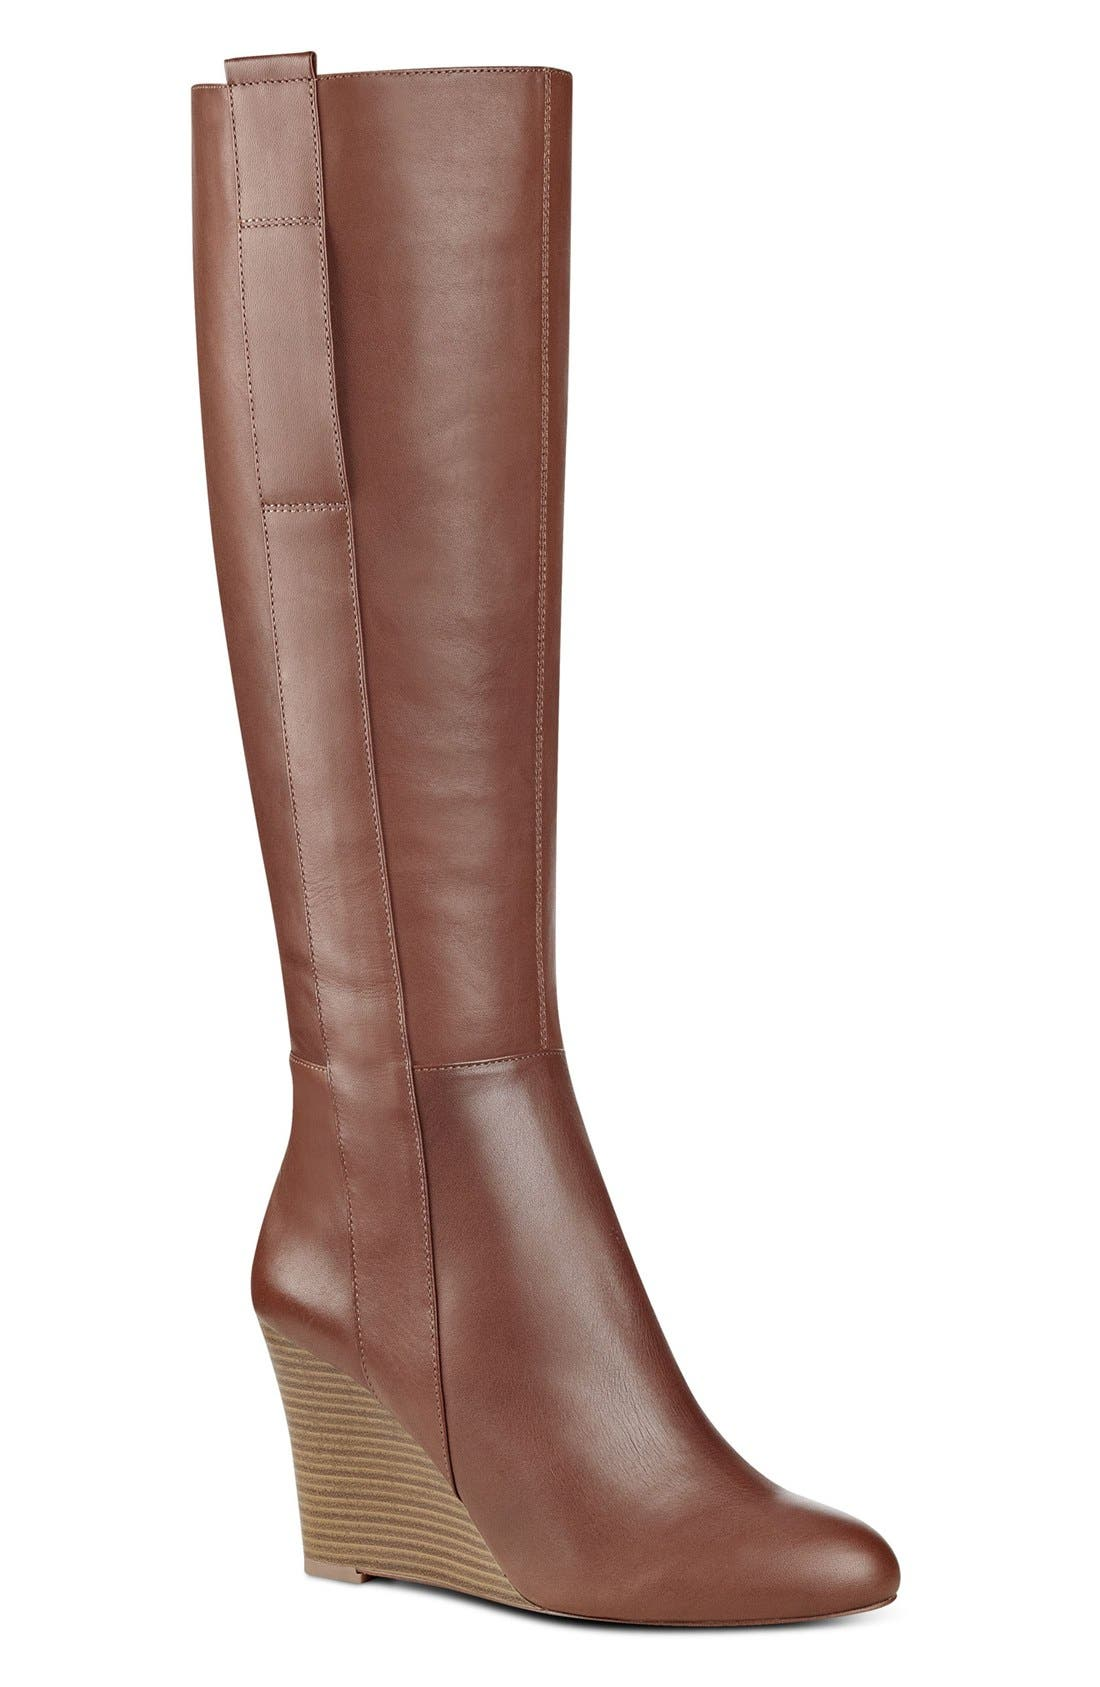 Alternate Image 1 Selected - Nine West Orsella Tall Wedge Boot (Women)